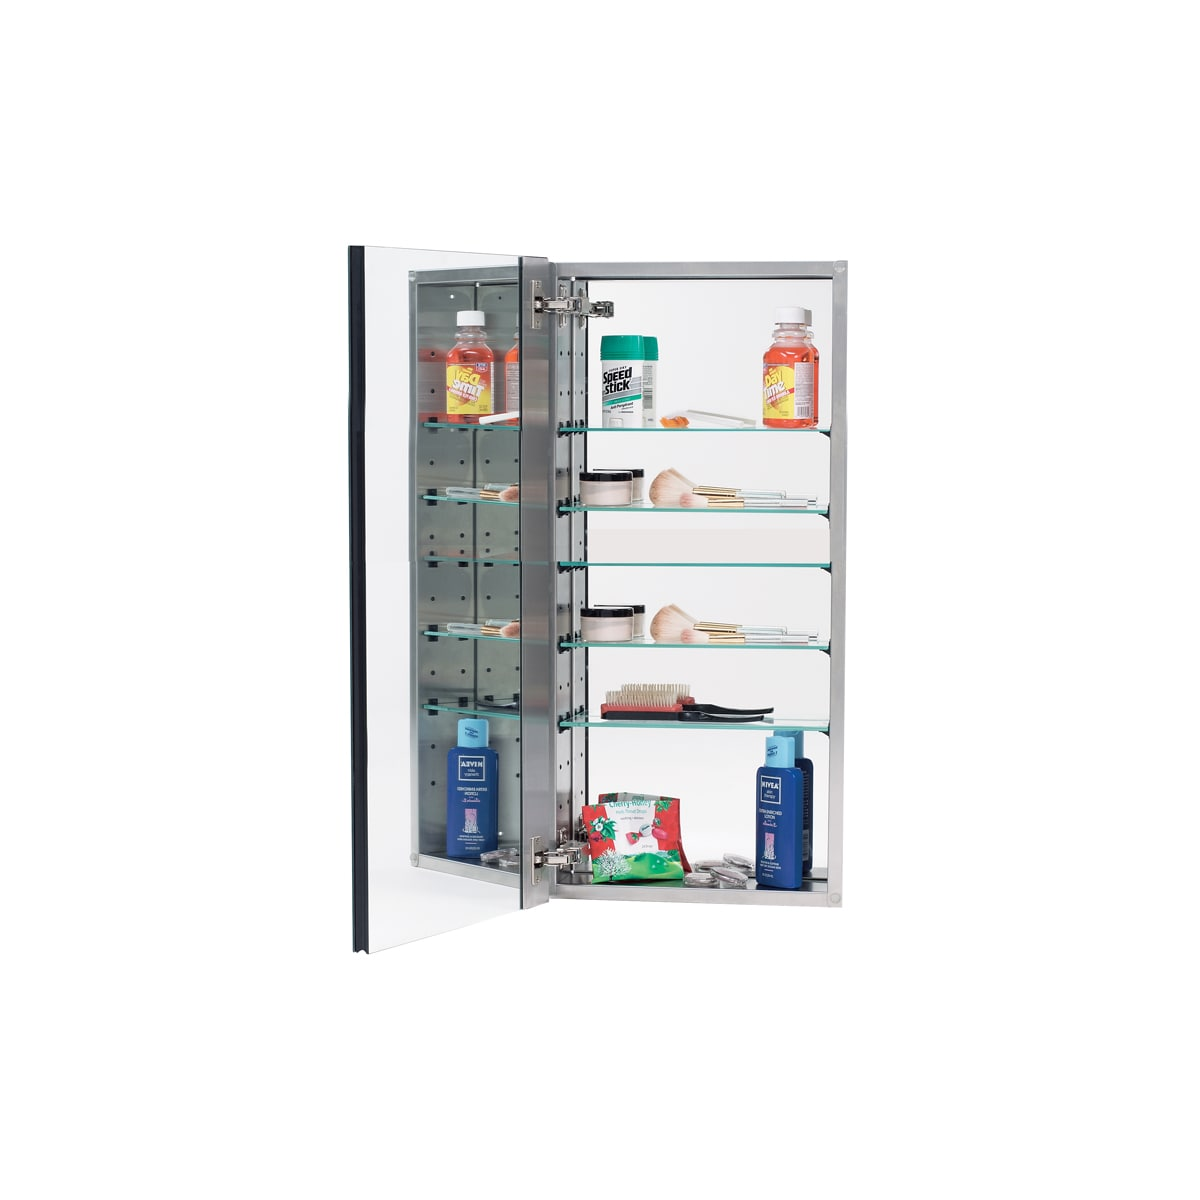 """Alno 2000 Series 15"""" x 35"""" Single Door Recessed Medicine Cabinet with Stainless Steel Interior, 4 Glass Shelves and Beveled Mirror"""